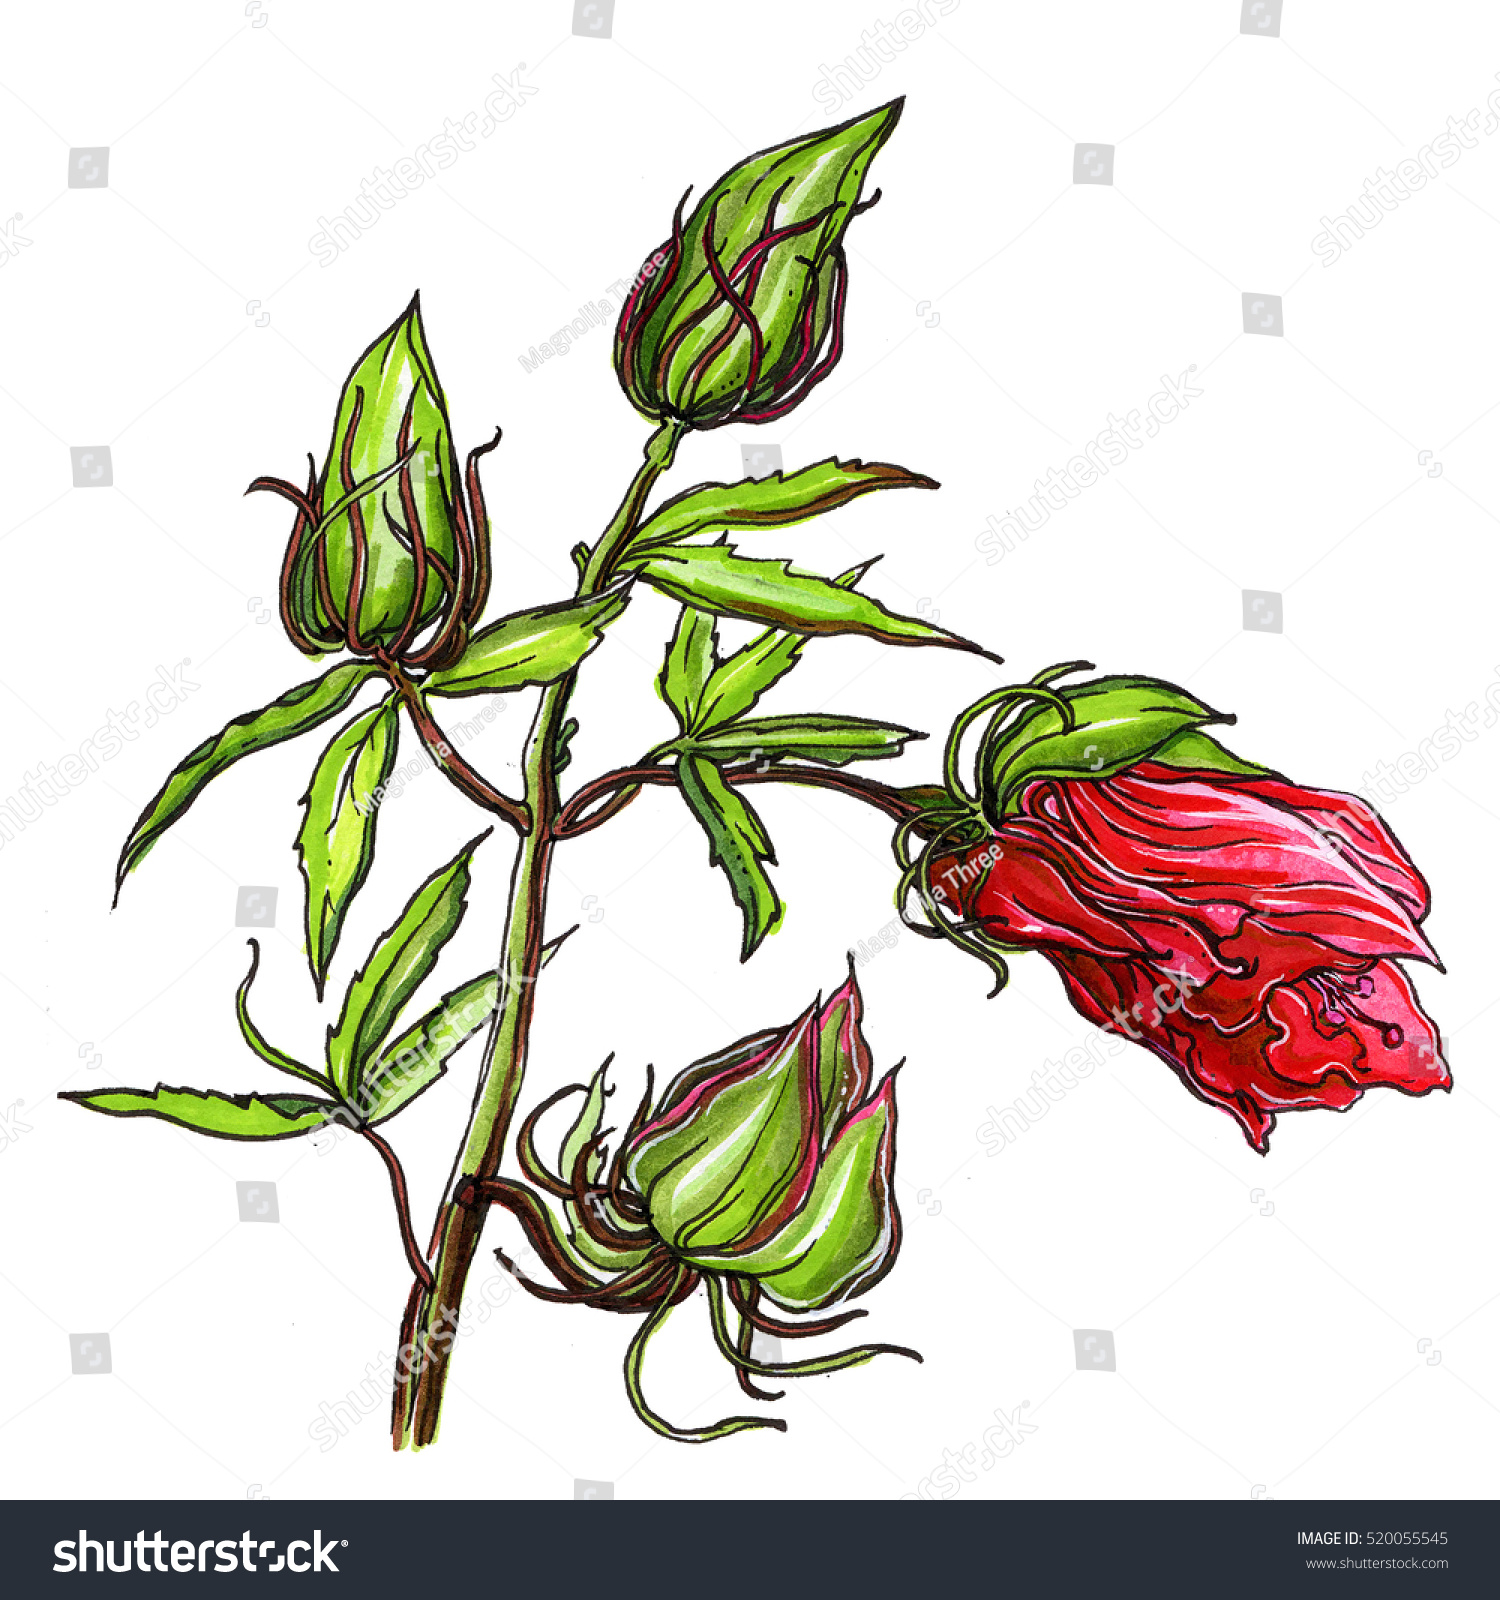 Hibiscus Flower Bud Hand Drawn Decorative Stock Illustration